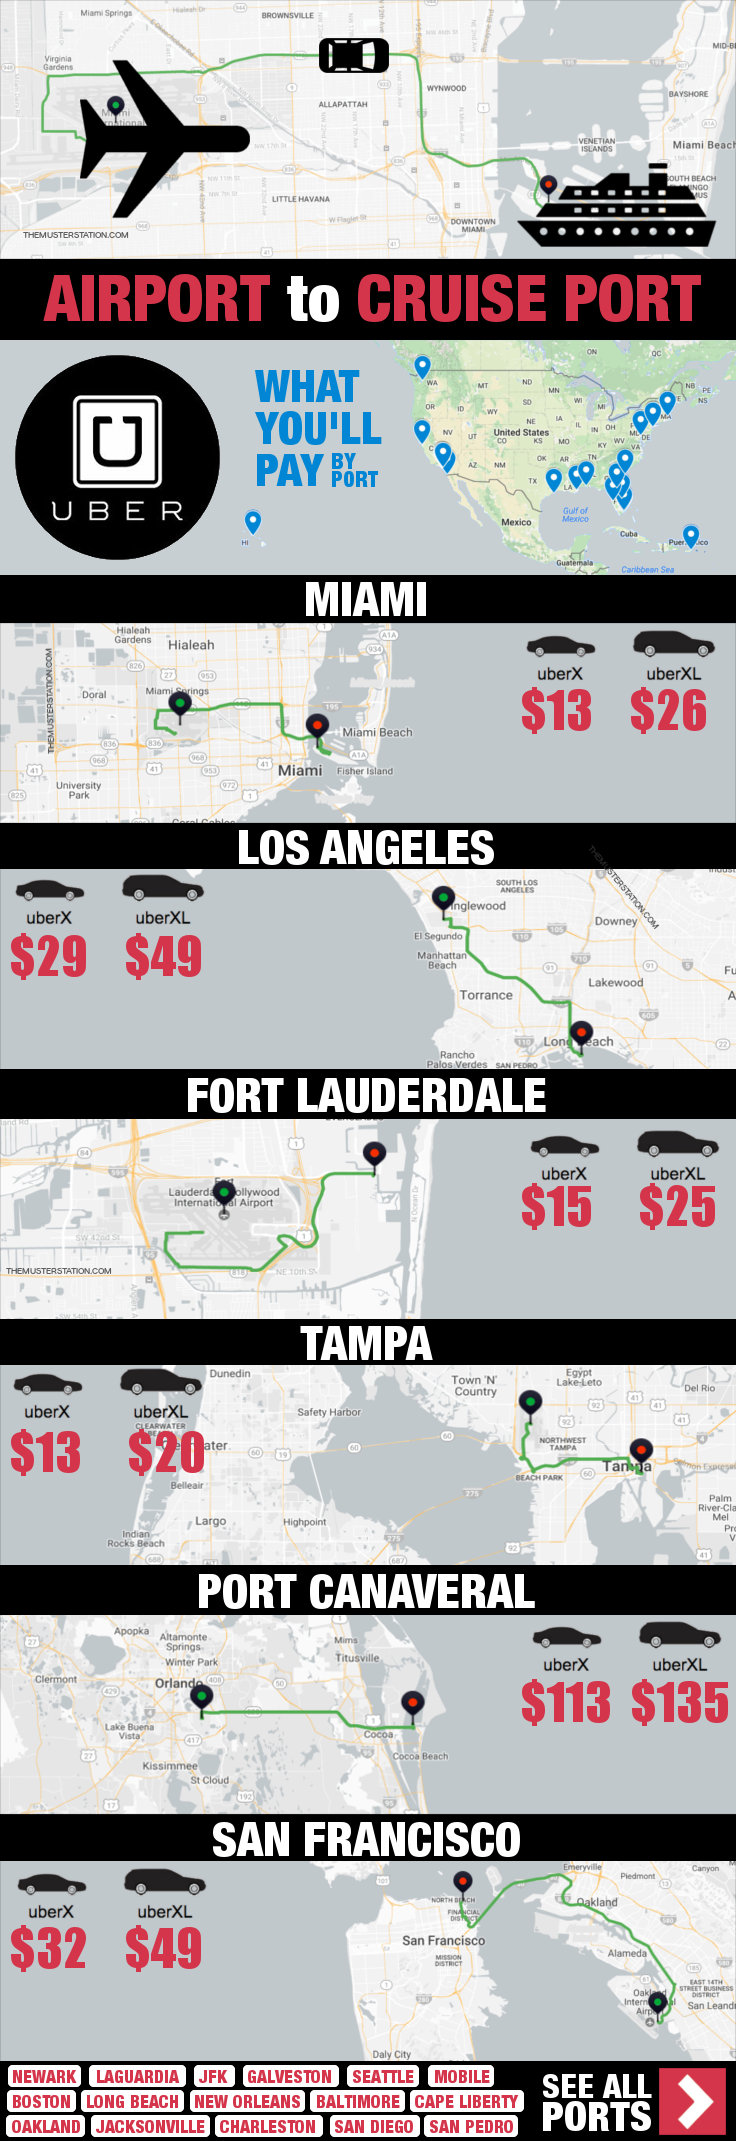 Airport to Cruise Port Uber Costs (2019) for Every US Port